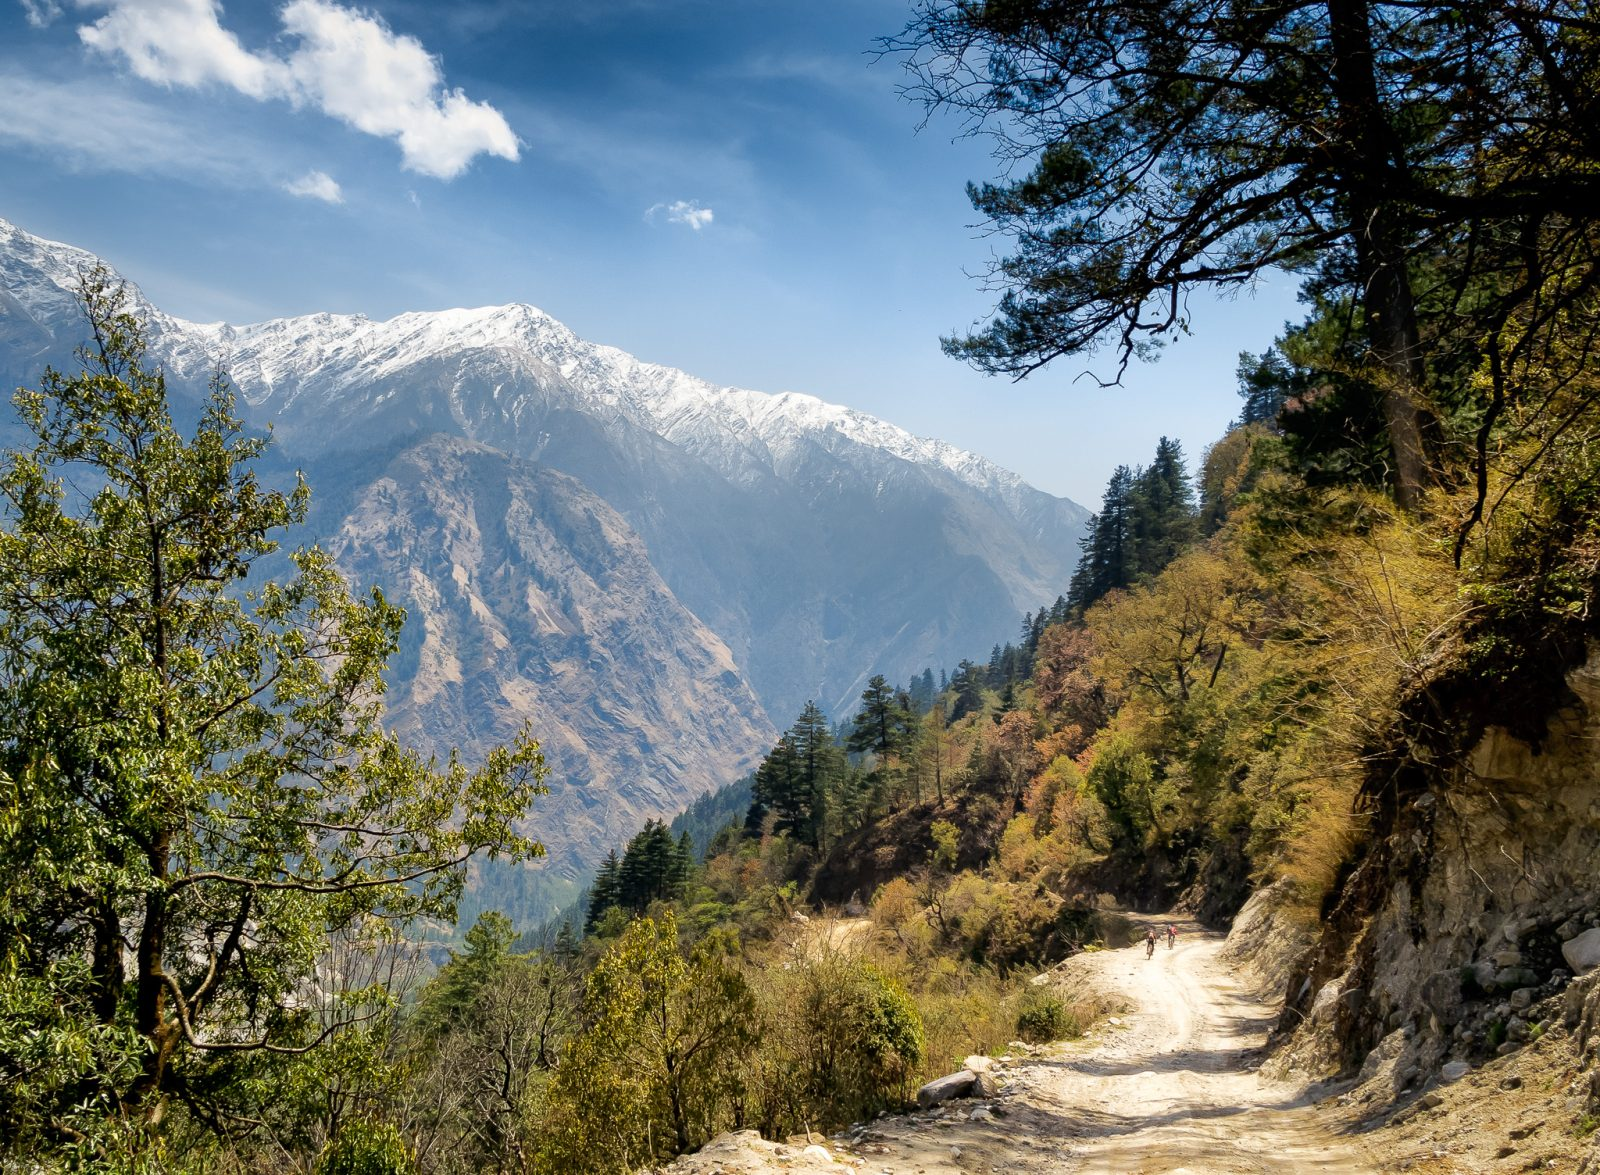 Himalayan Peaks and Alpine Forests